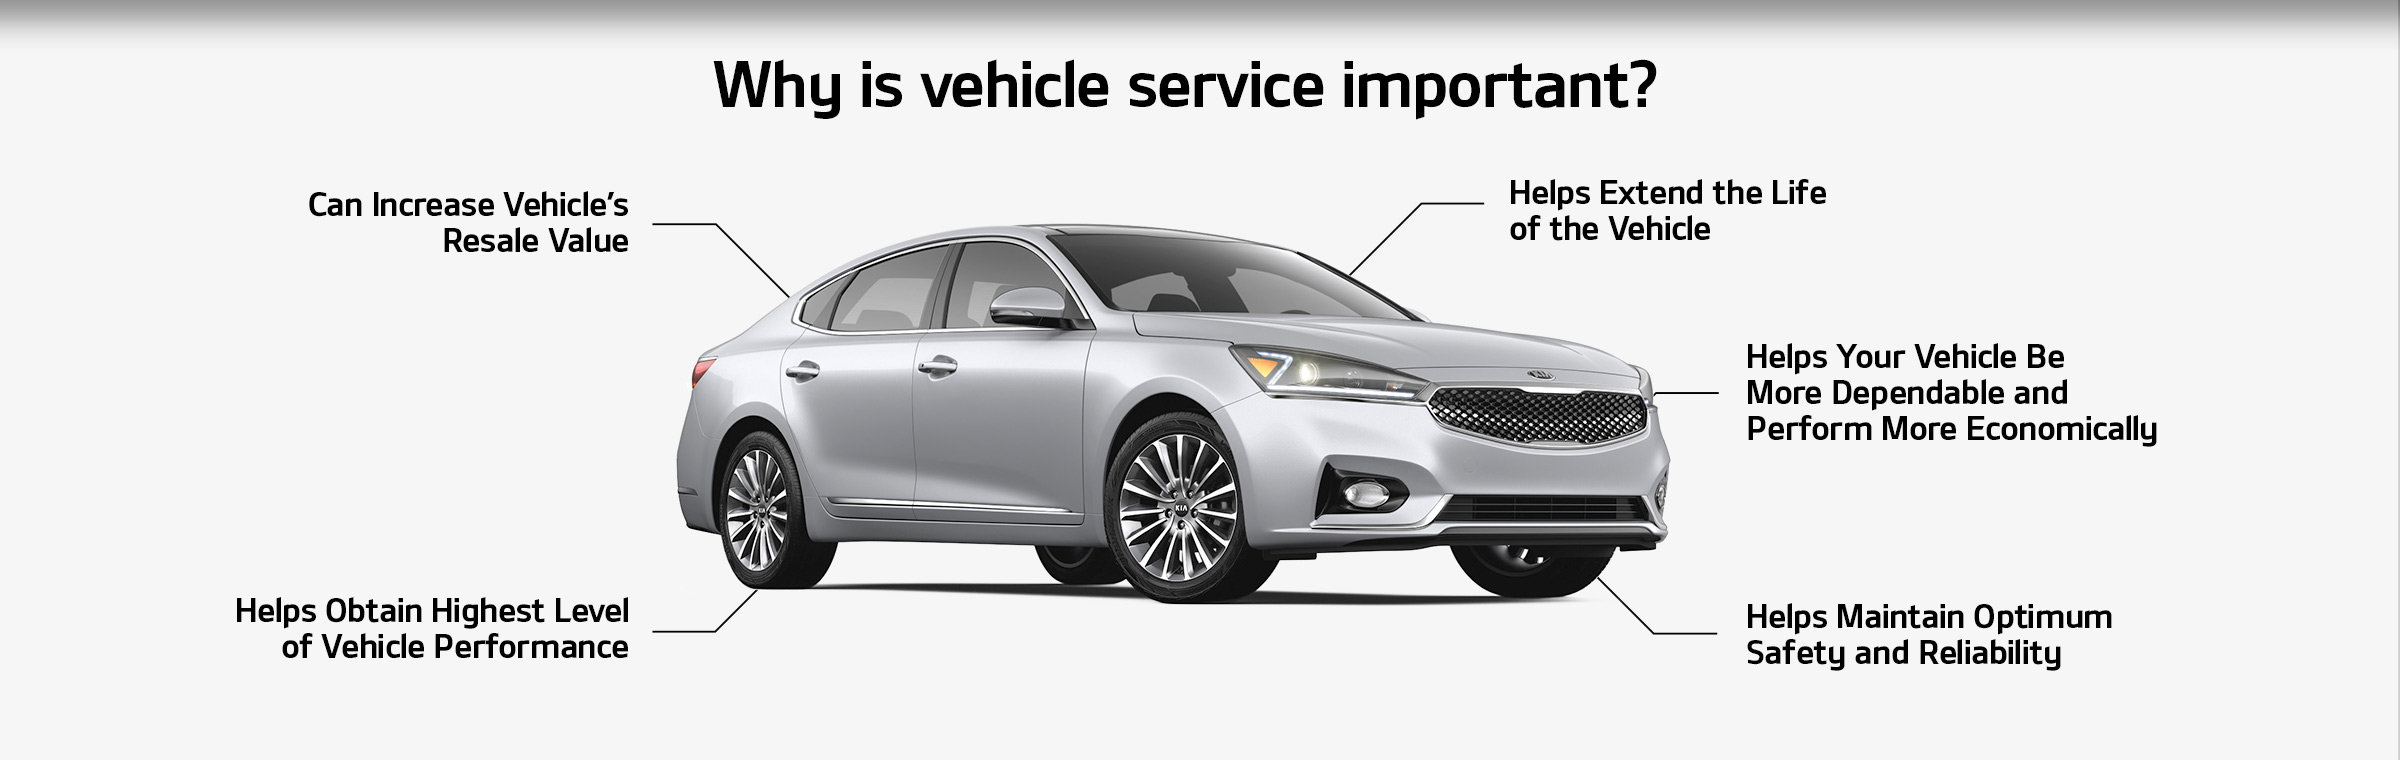 Why is vehicle service important? Can Increase Vehicle's Resale Value, Helps Obtain Highest Level of Vehicle Performance, Helps Extend the Life of the Vehicle, Helps Your Vehicle BeMore Dependable andPerform More Economically, and Helps Maintain Optimum Safety and Reliability.